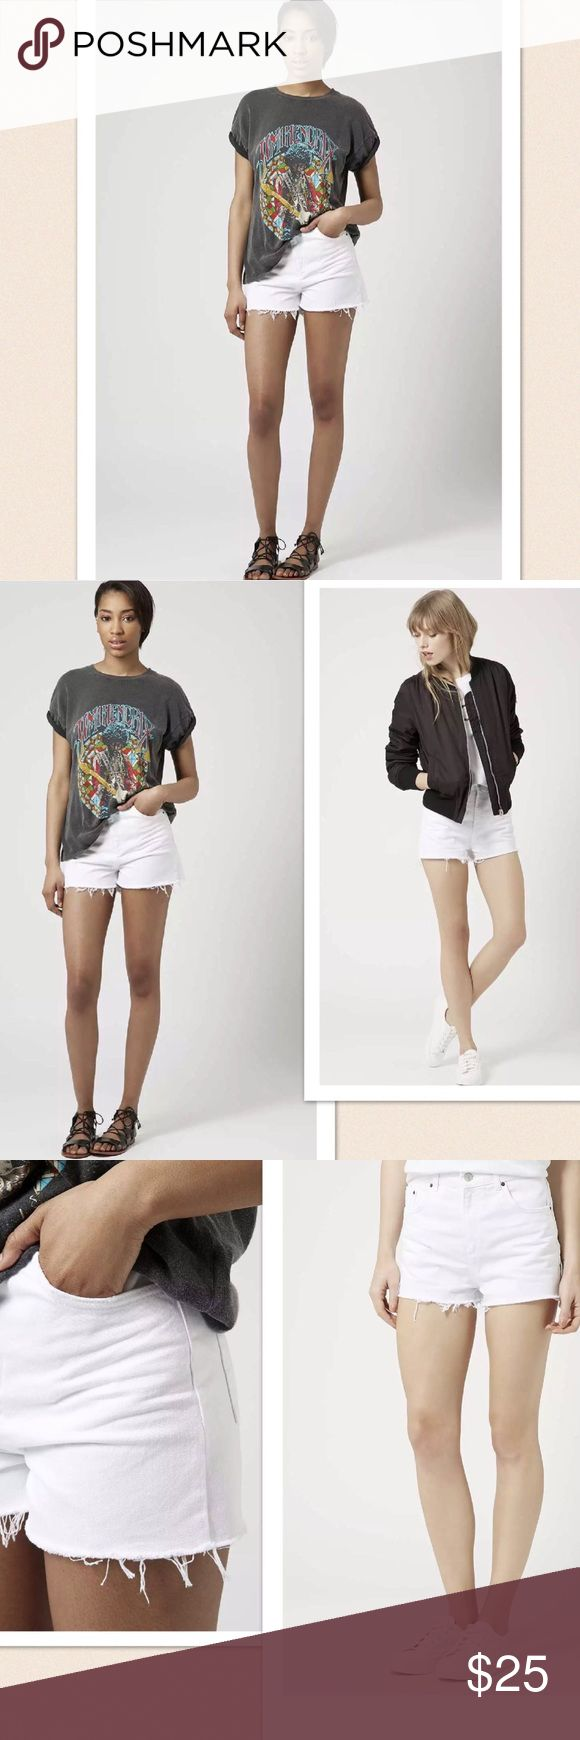 """🆕 Mom Topshop Moto High waist Denim Shorts 🆕 Mom Topshop High waist Denim Shorts. Cut off design. Size: 14. Seam: 1.5"""", length: 12.5"""", rise: 12.5"""". Color: White. 🆕 without tag. Topshop Shorts"""